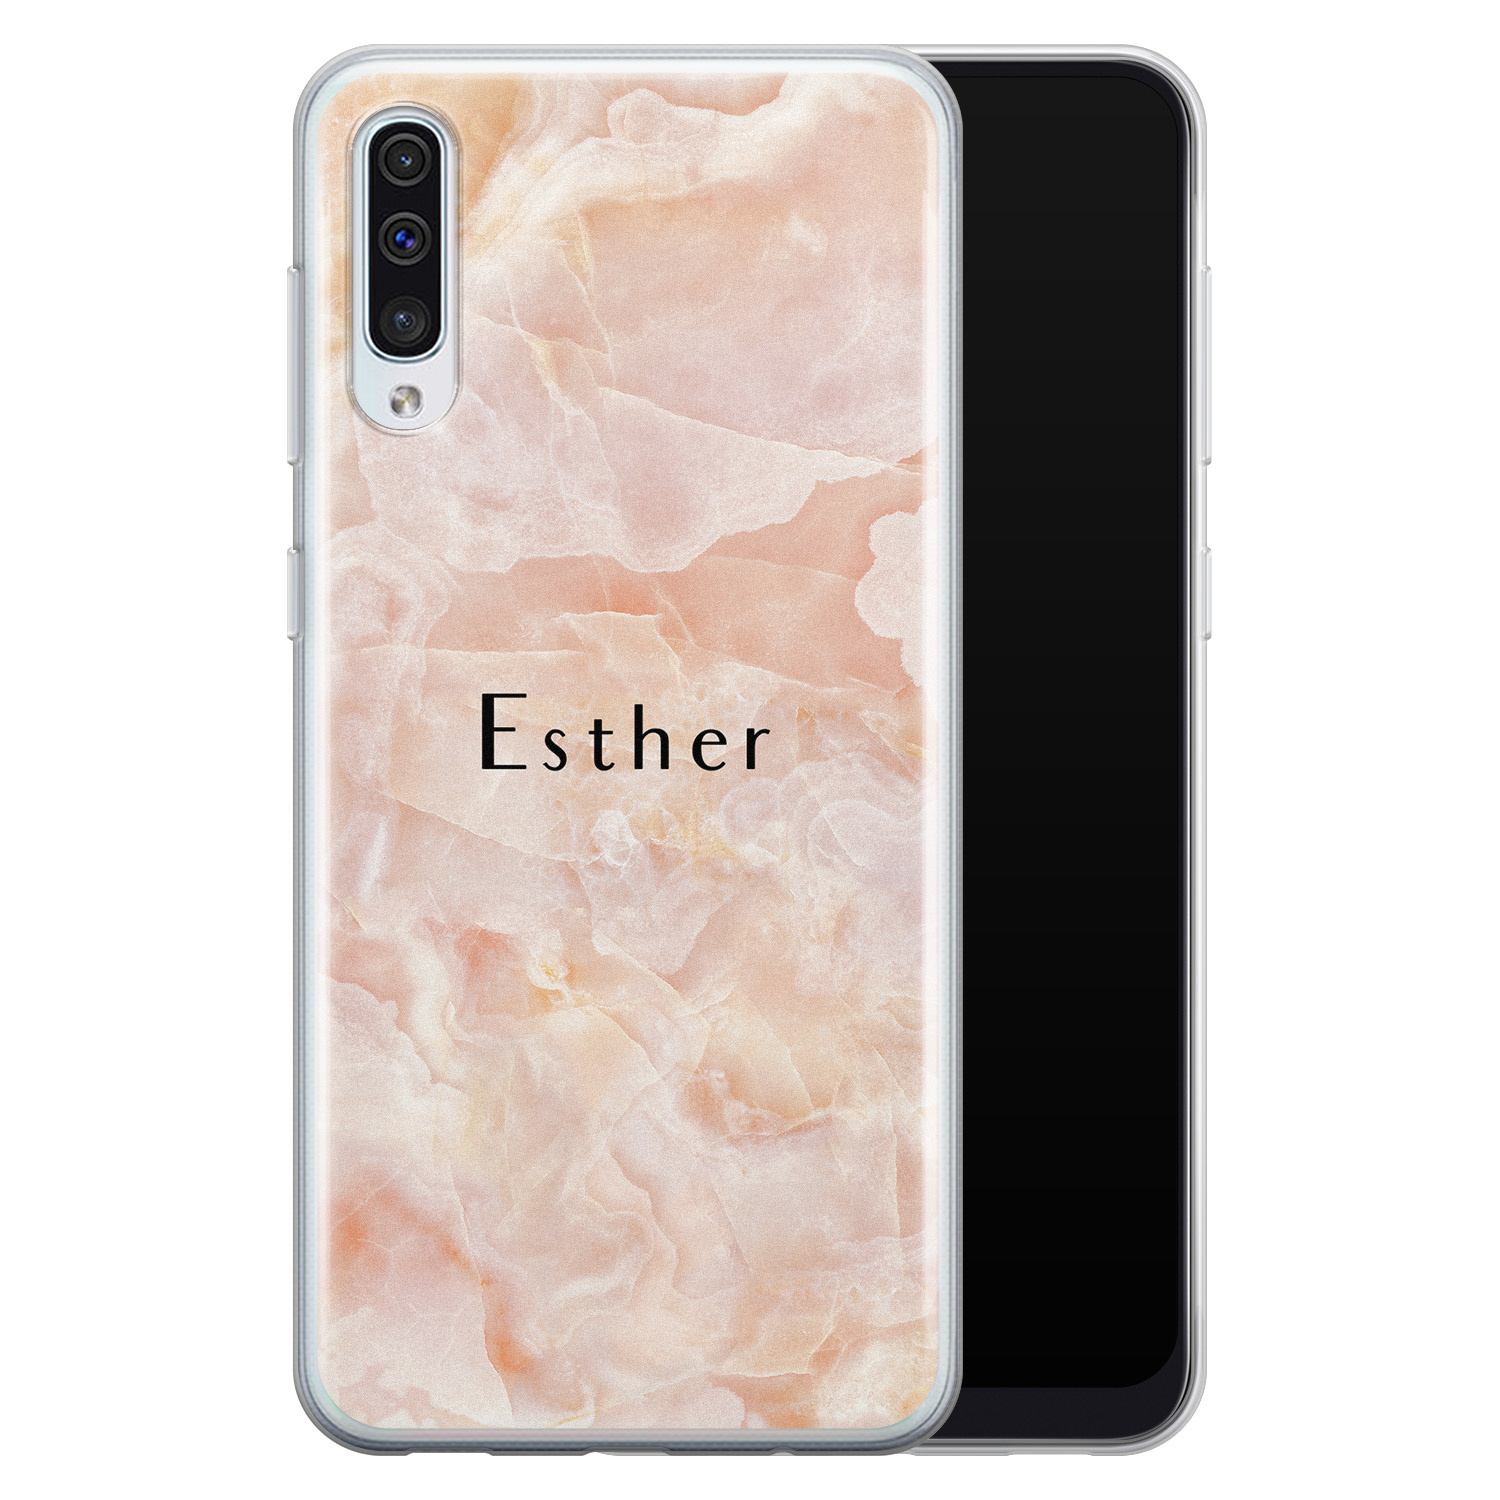 Samsung Galaxy A50/A30s siliconen hoesje ontwerpen - Marble sunkissed